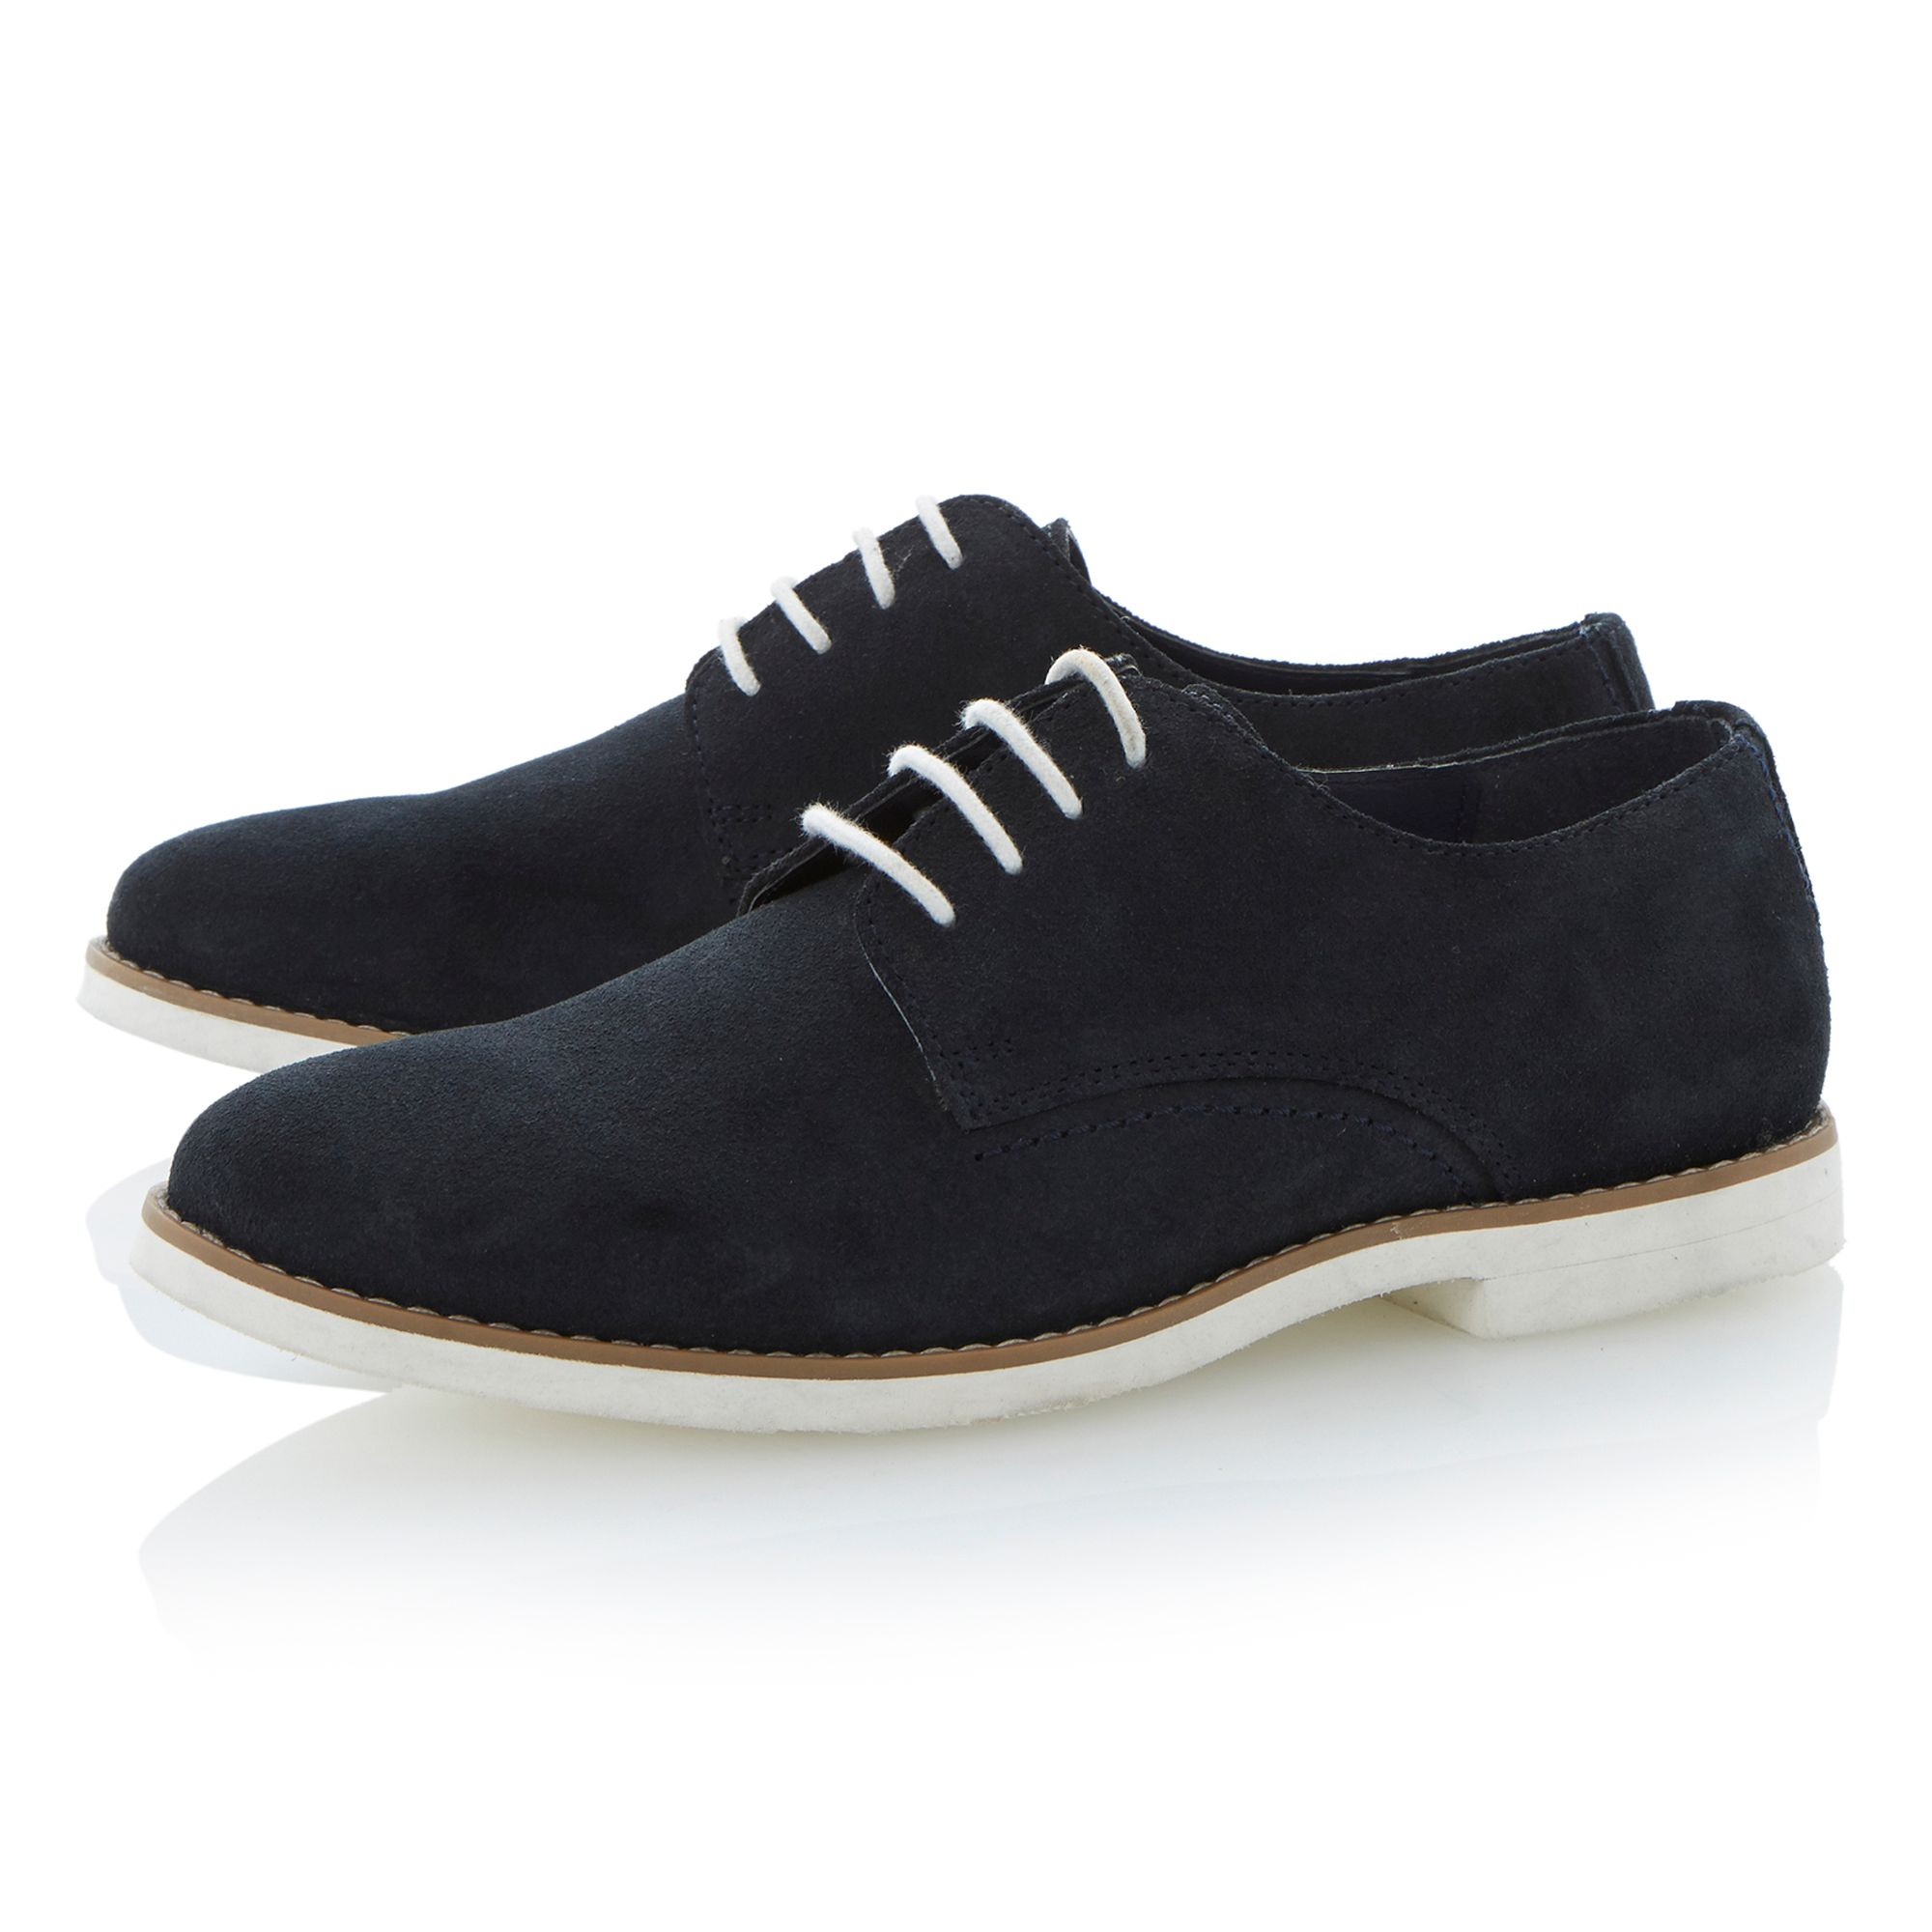 Boyd lace up white sole gibson shoes